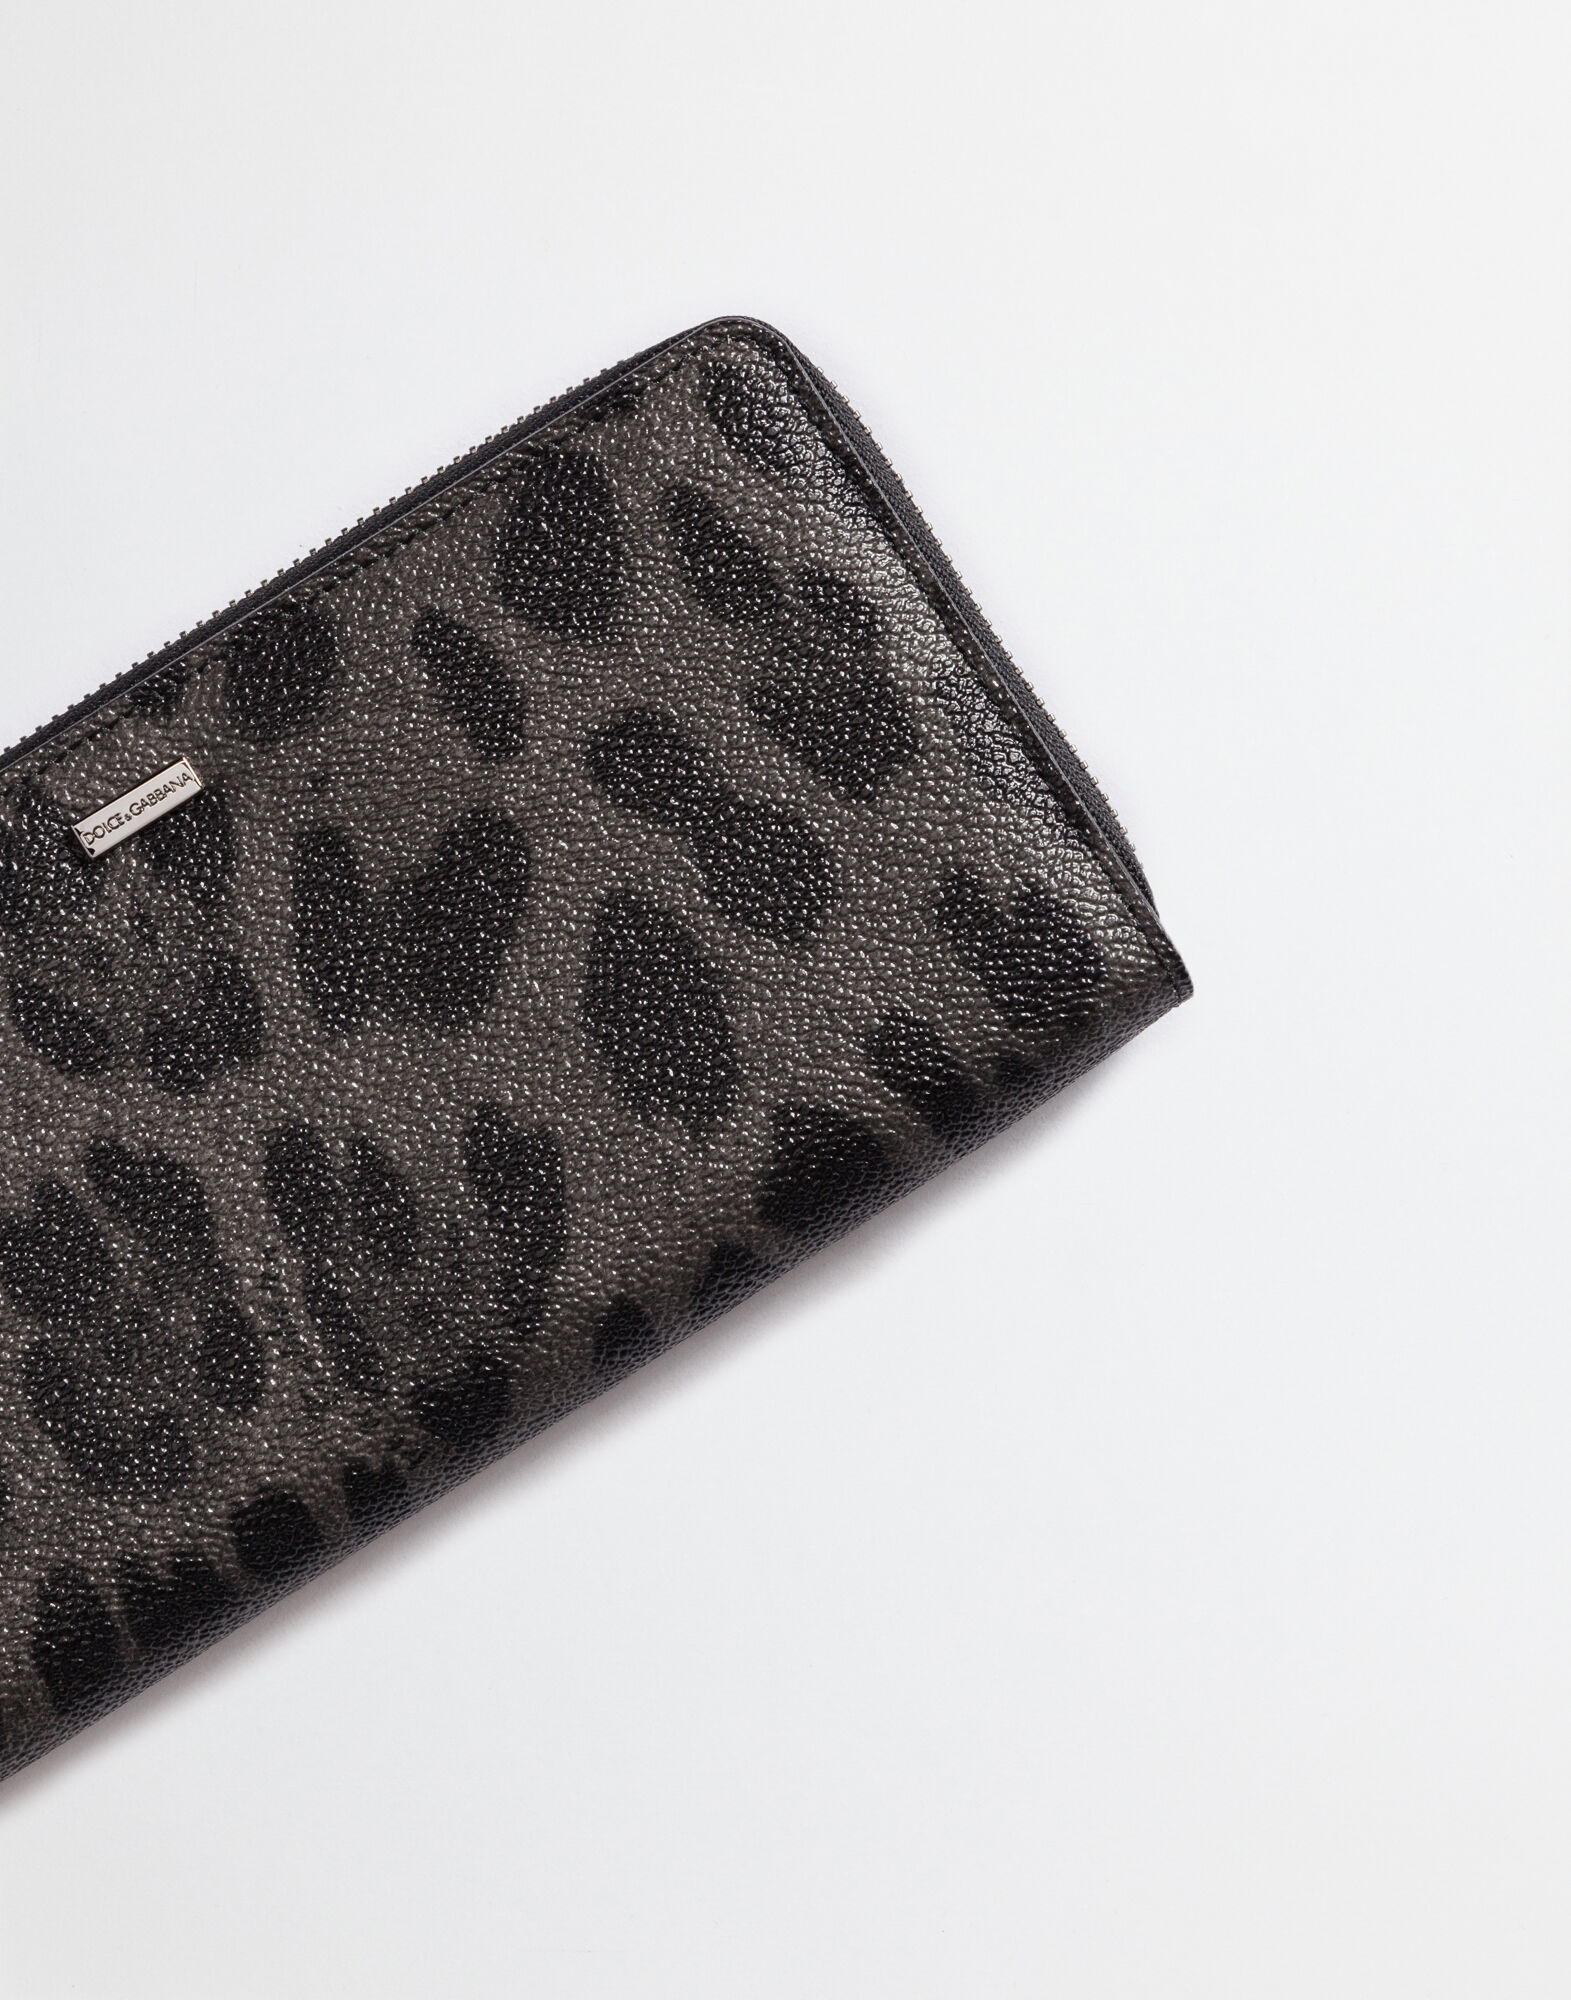 ZIP-AROUND WALLET IN CREPE LEOPARD